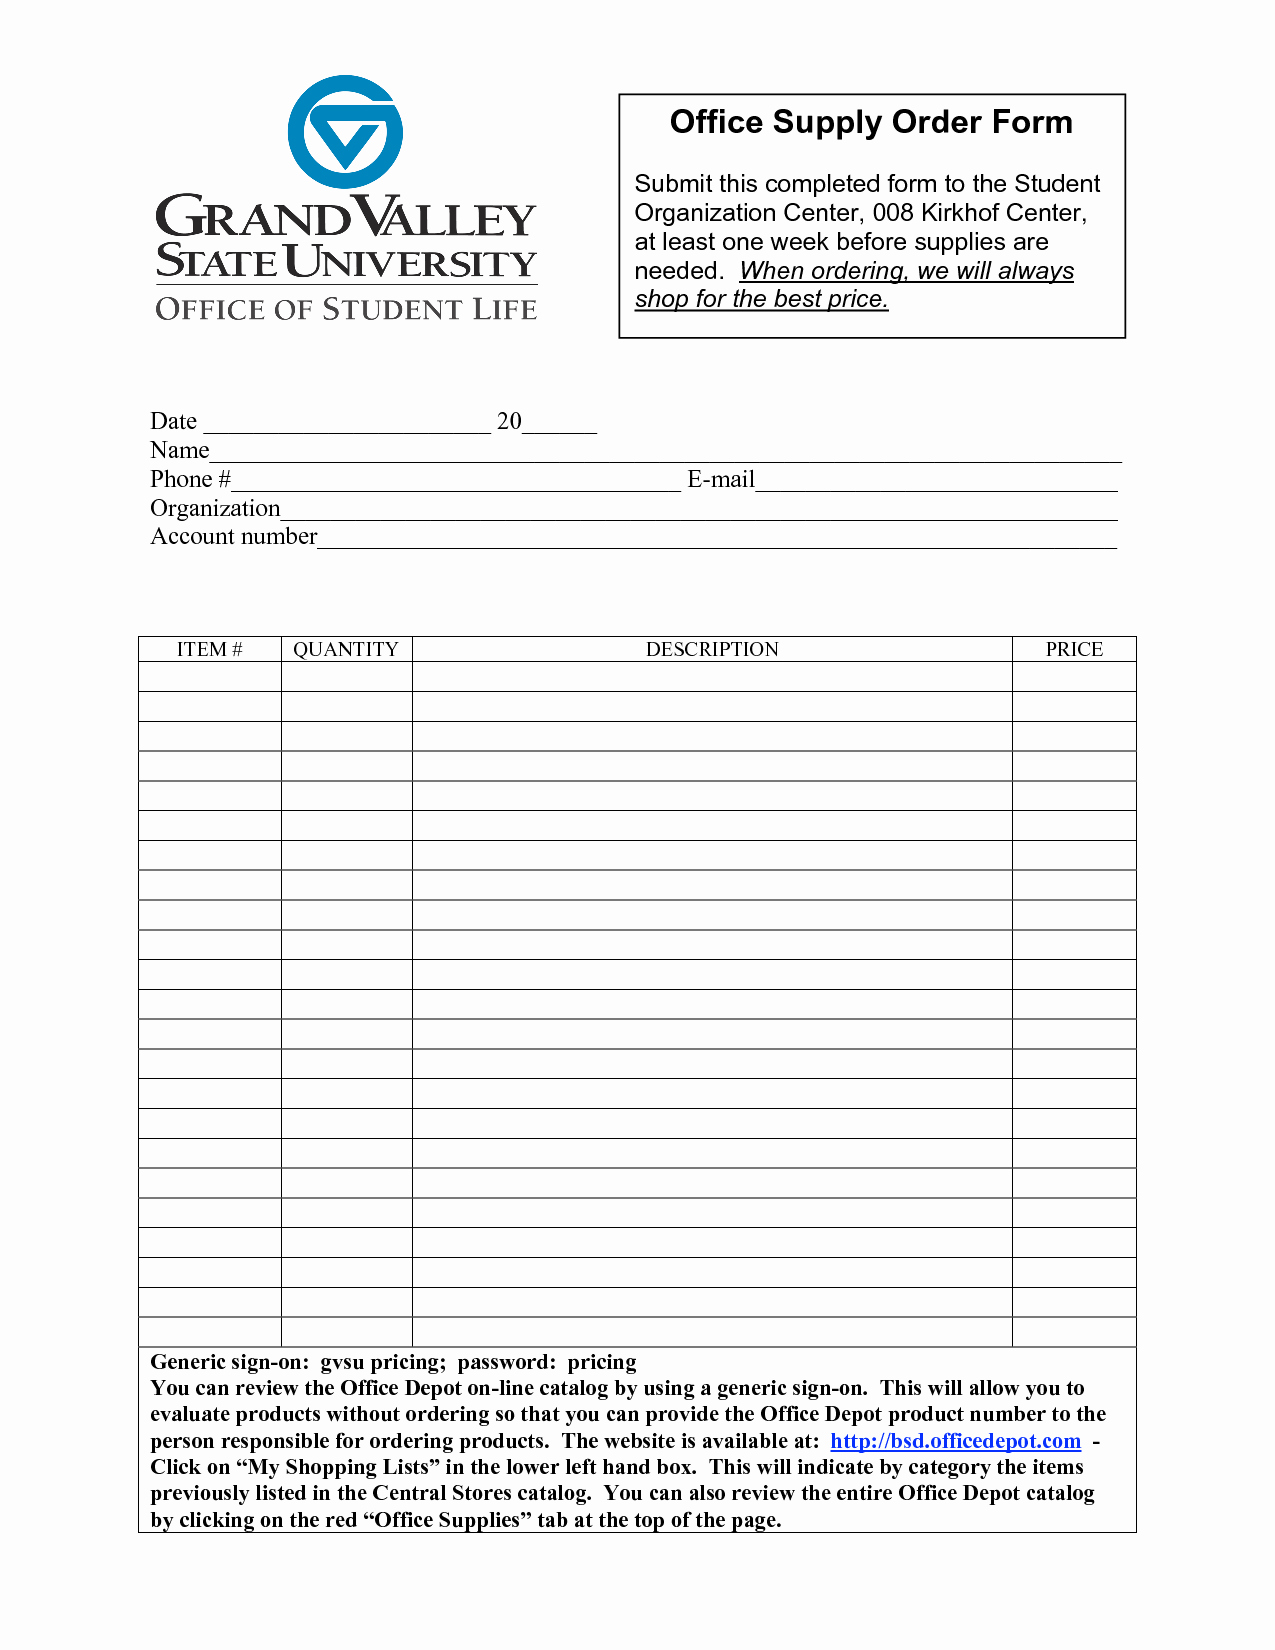 Office Supply order form Best Of Best S Of Fice Depot forms Templates Fice Supply order form Template Fice Supplies